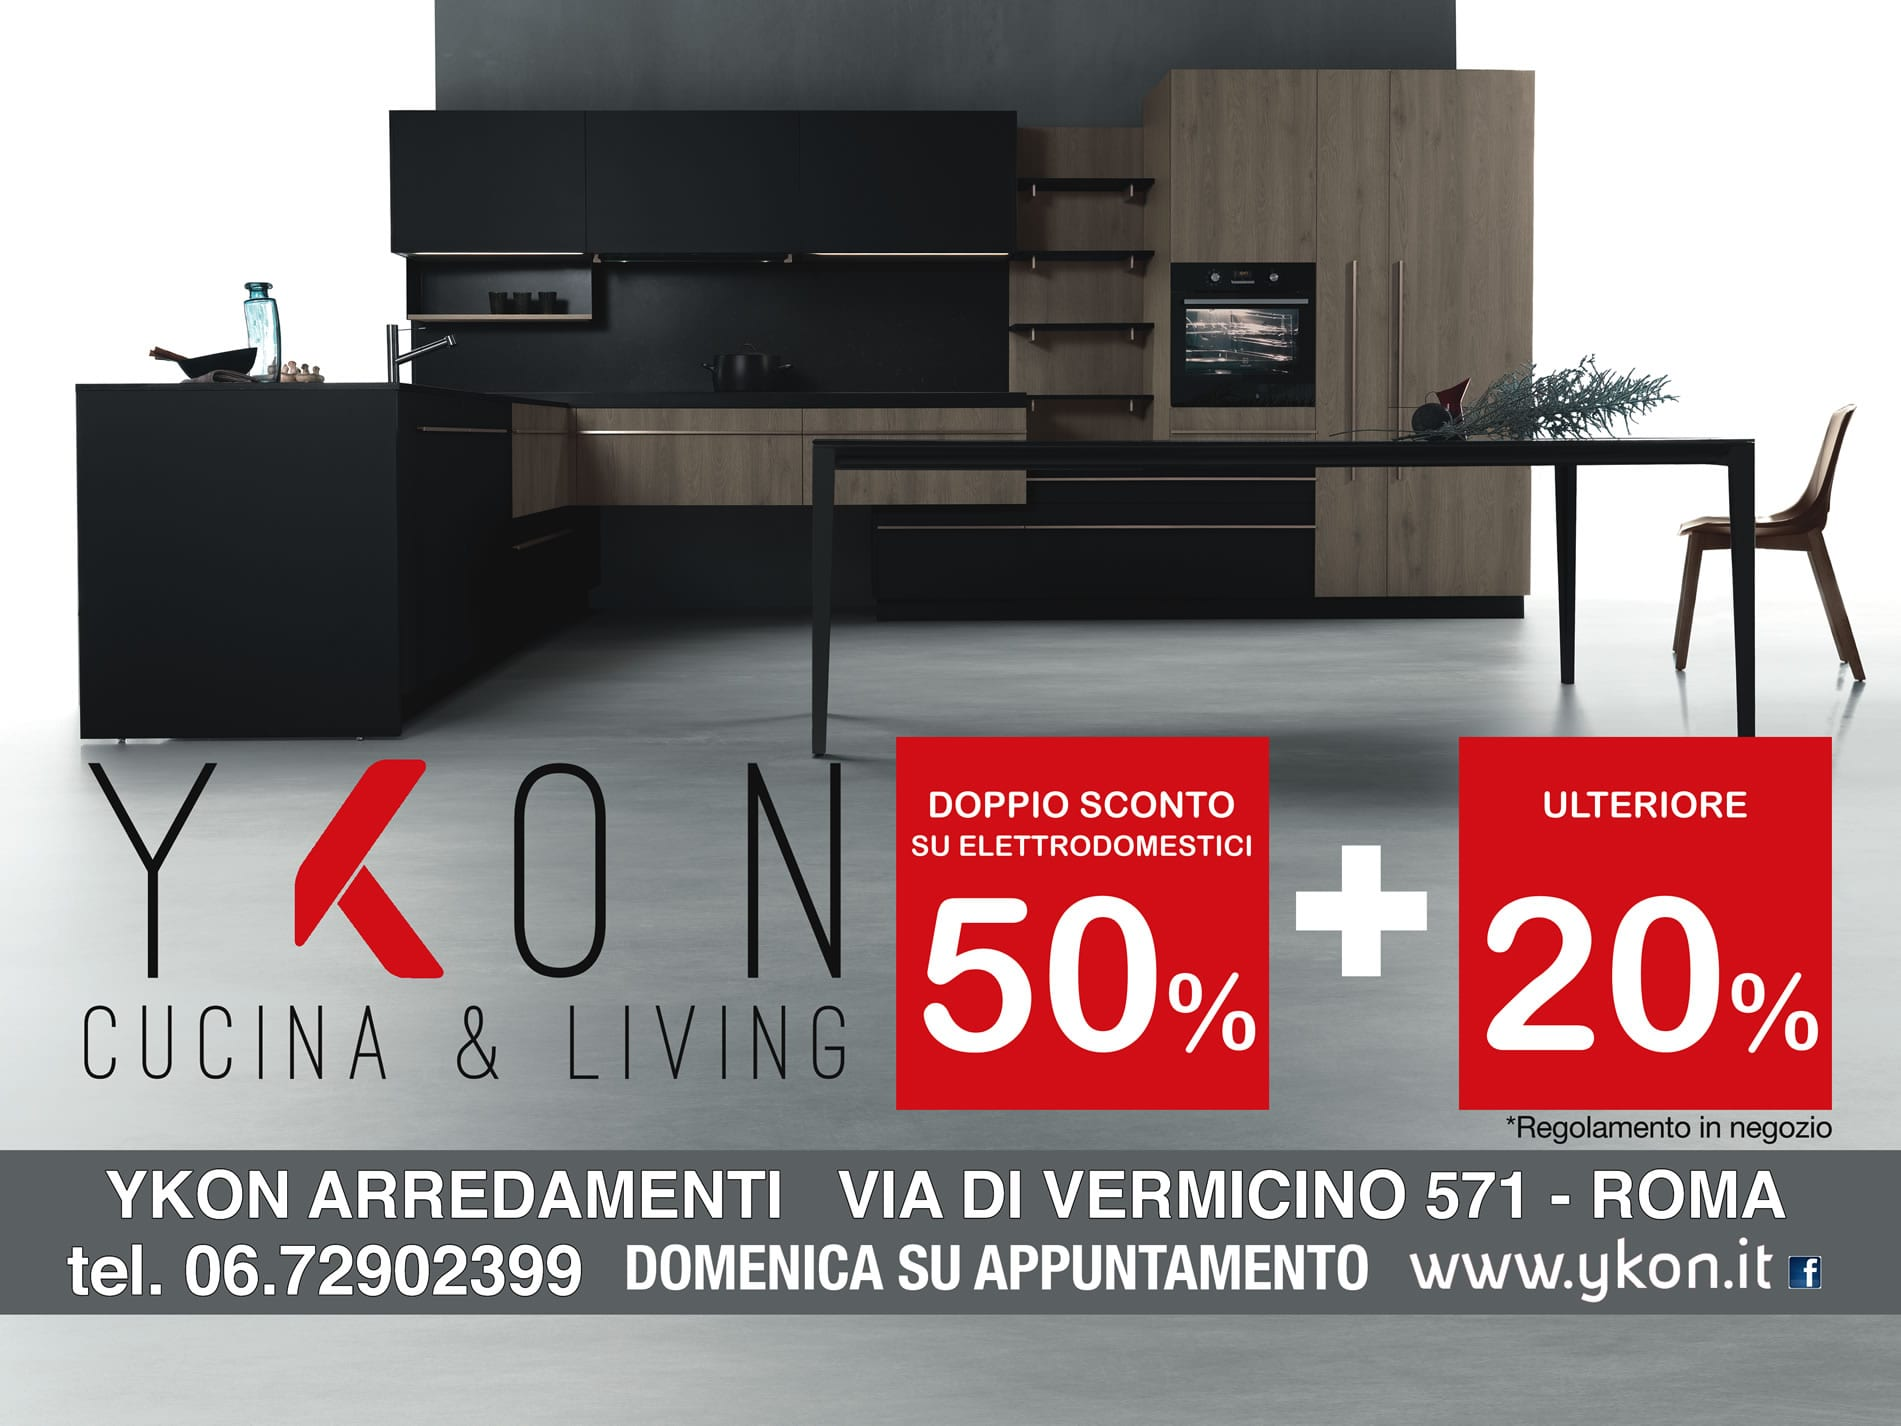 Outlet Cucine Roma Nord – 06.72902399 – CUCINE ROMA